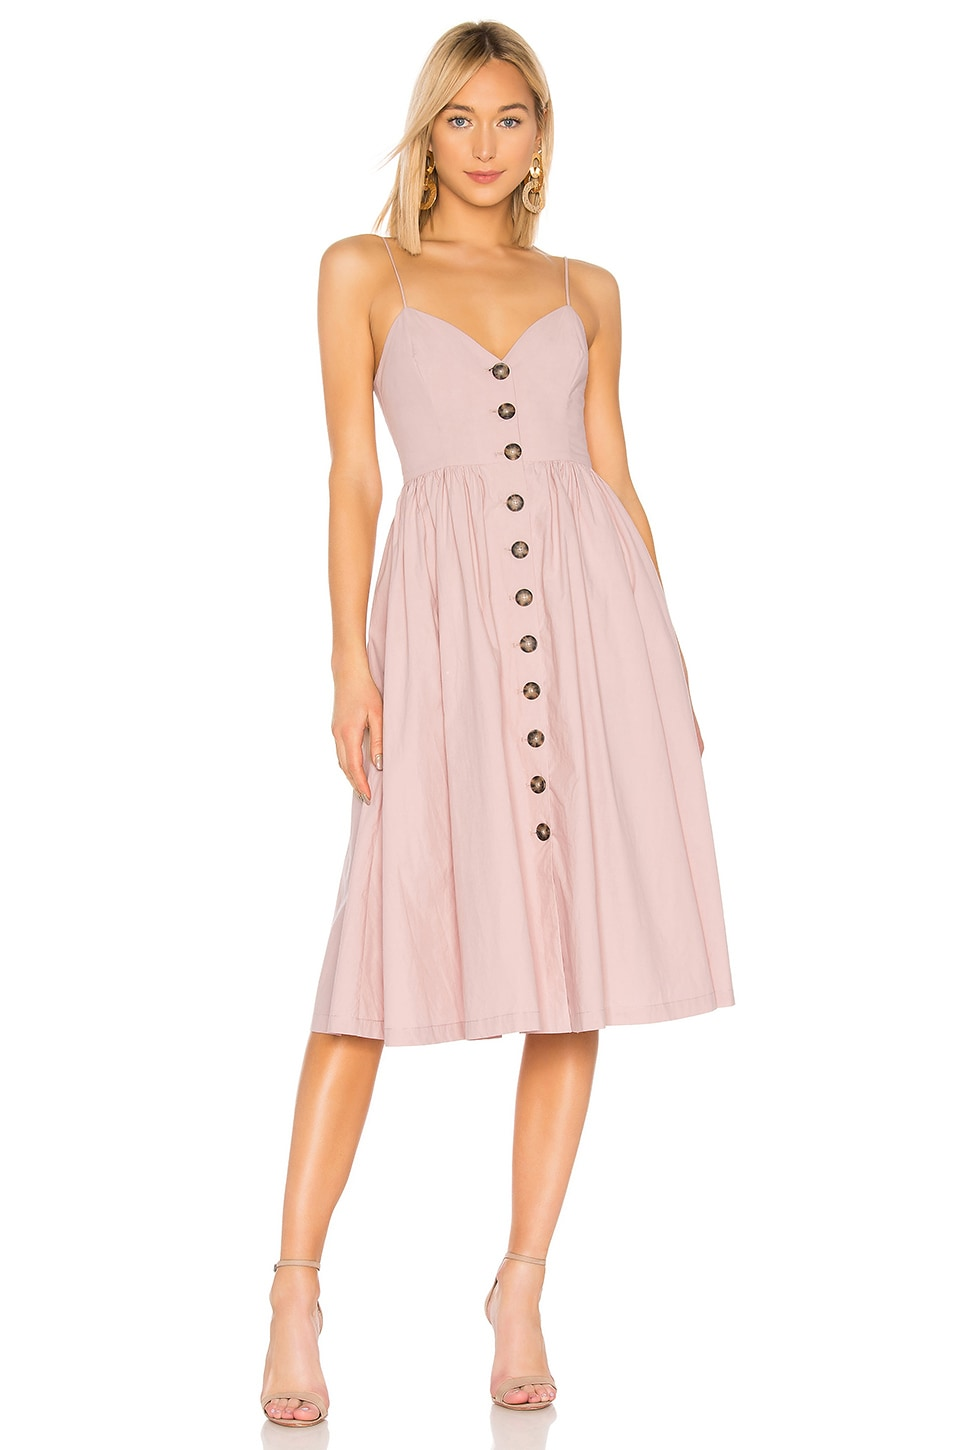 L'Academie The Seraphina Midi Dress in Mauve